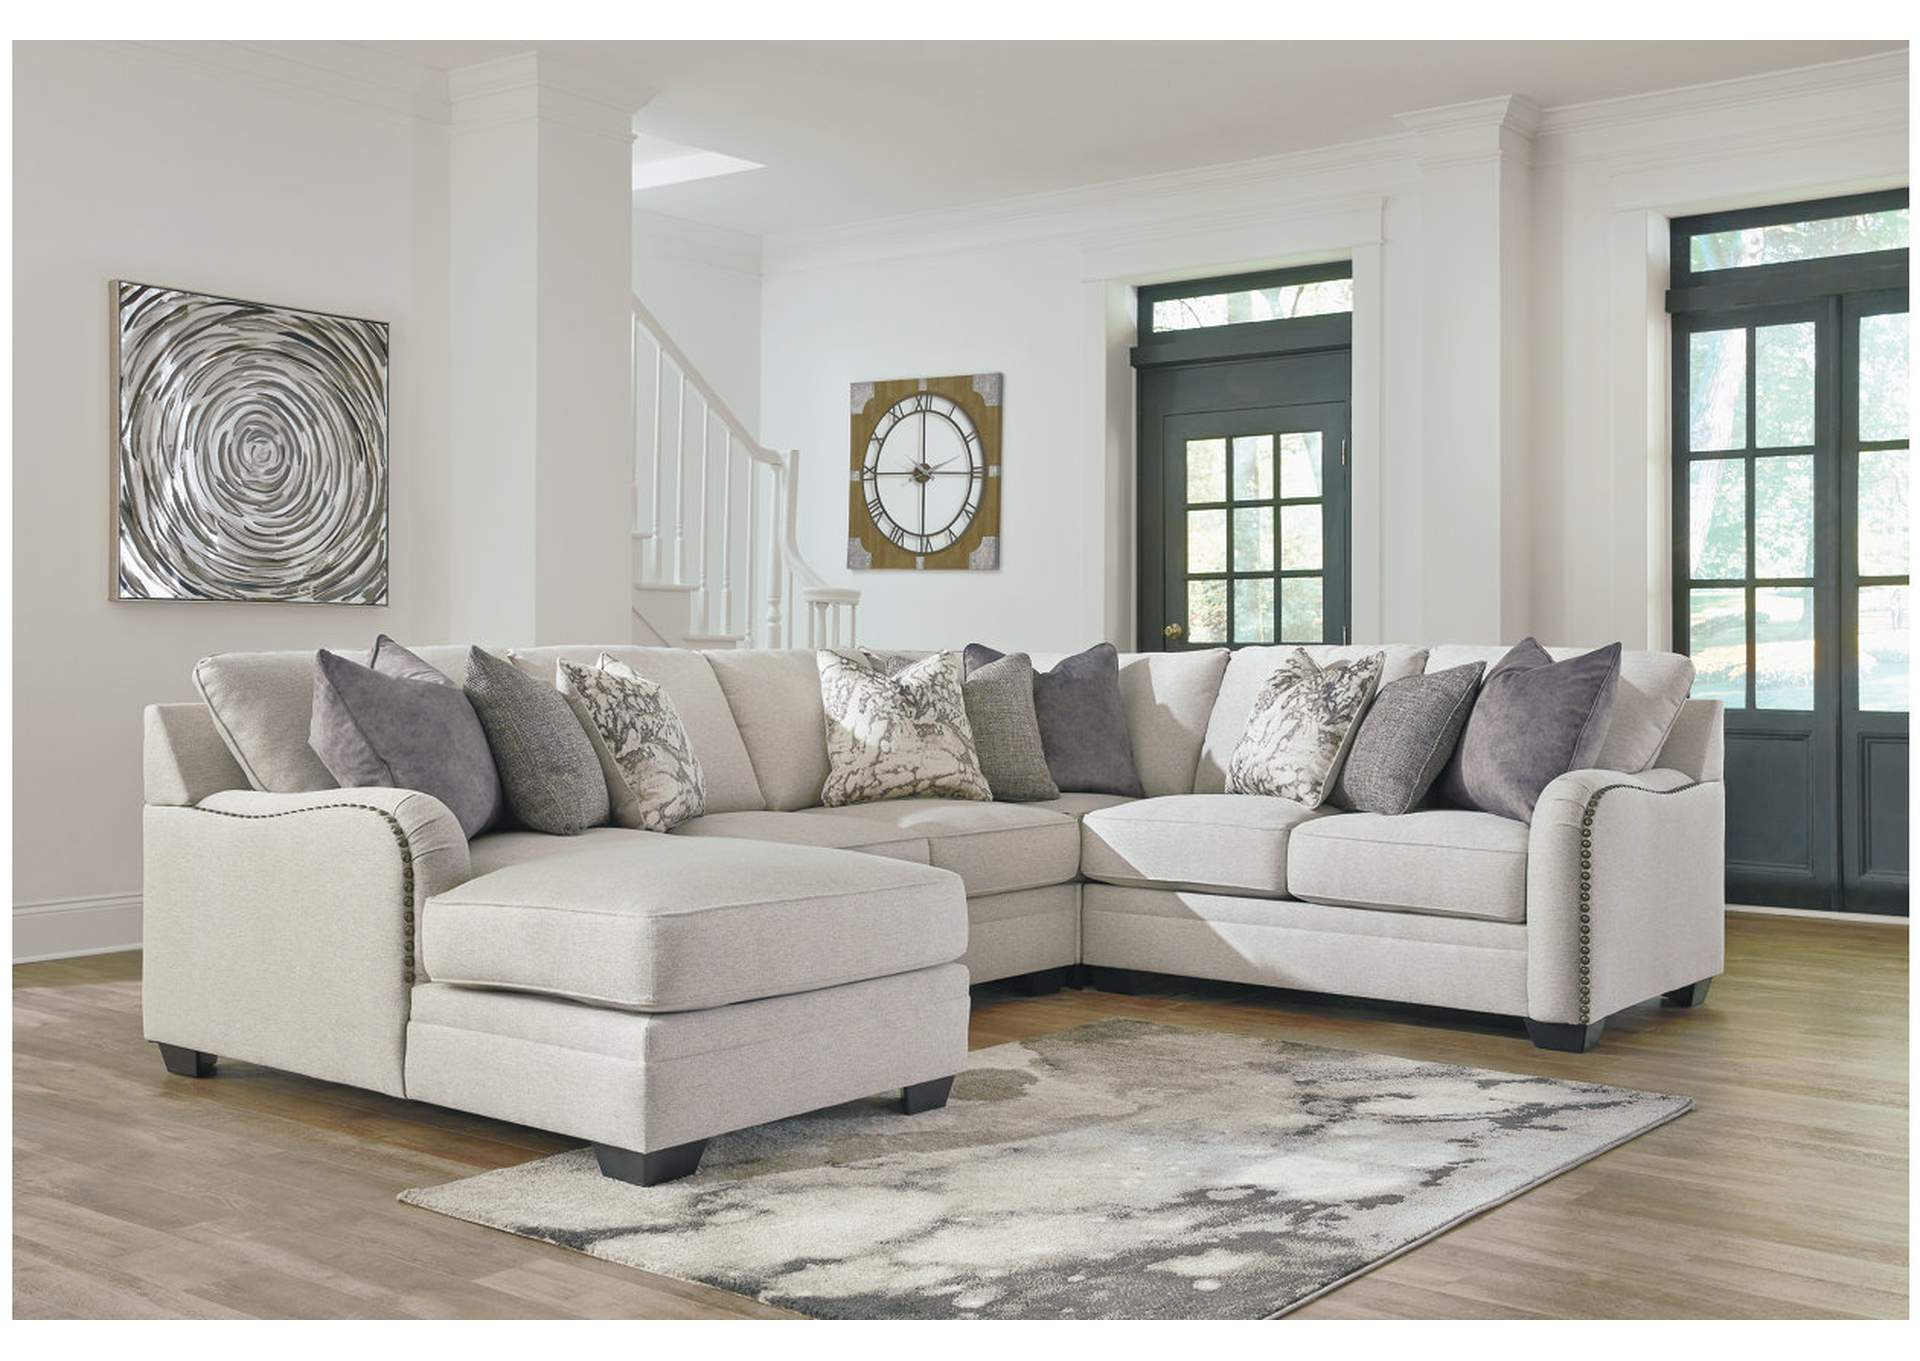 Dellara Chalk 4 Piece LAF Chaise Sectional,Benchcraft